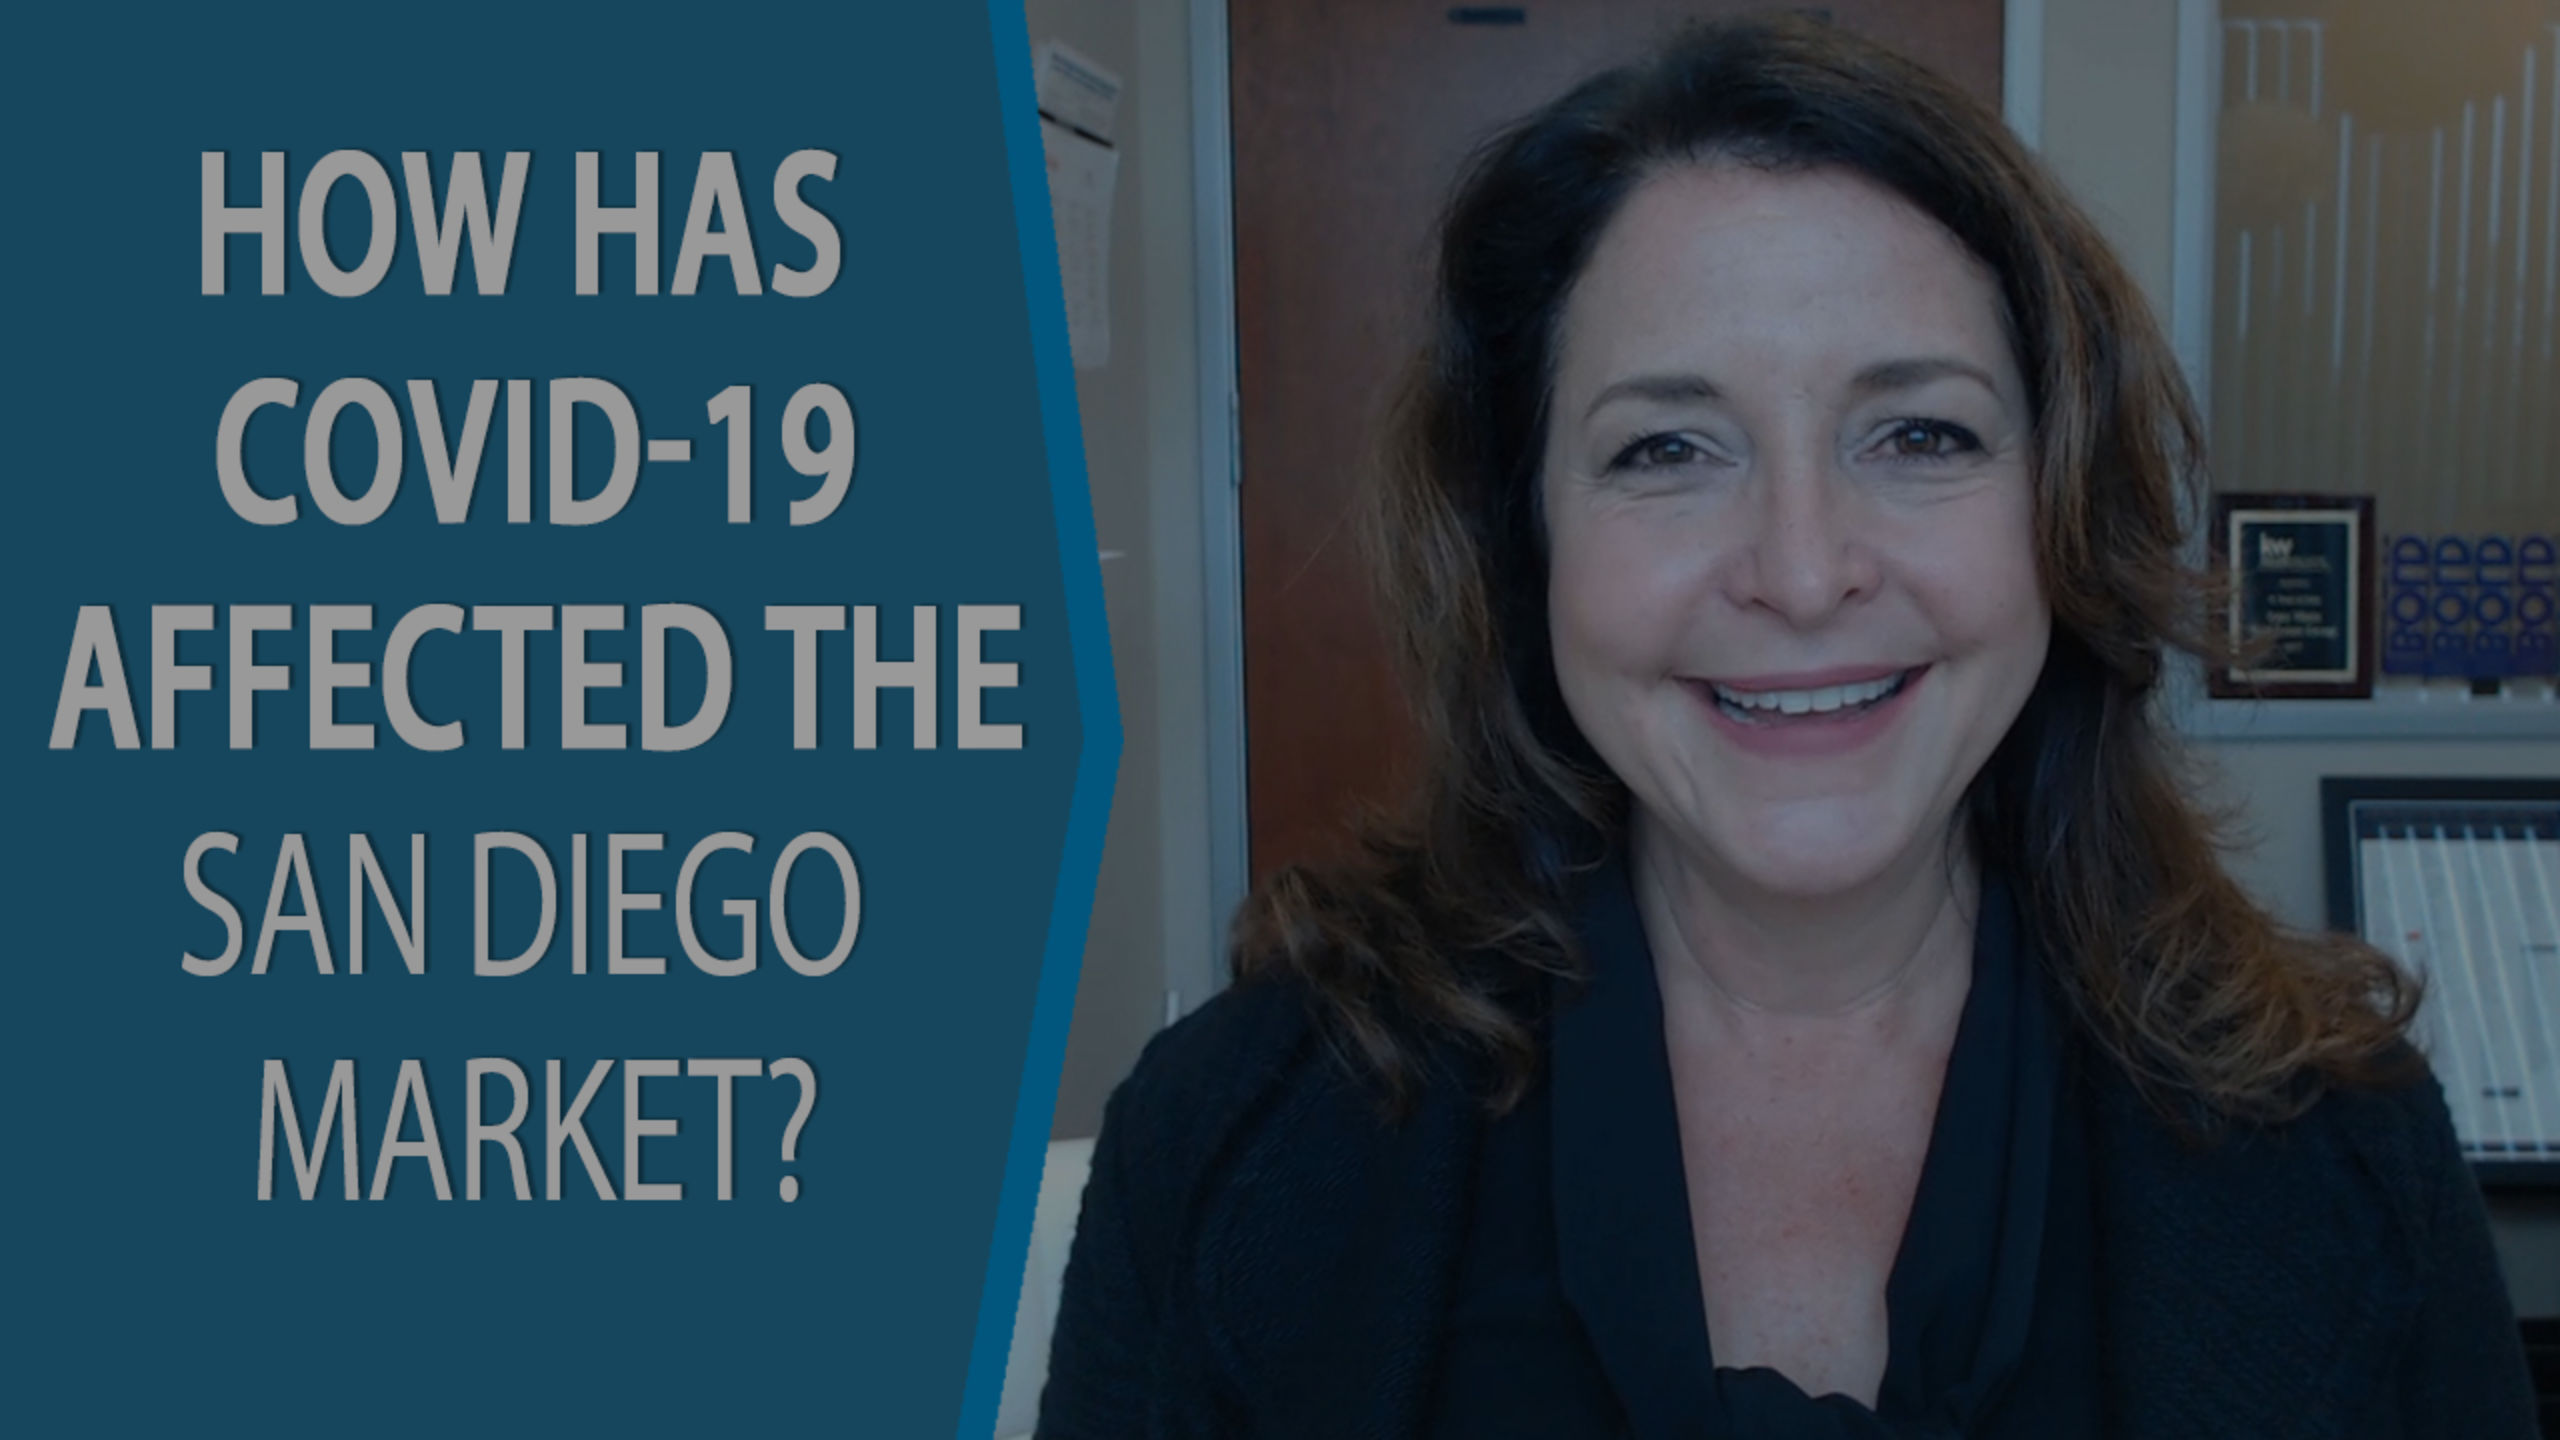 Q: How Has COVID-19 Affected the San Diego Market?